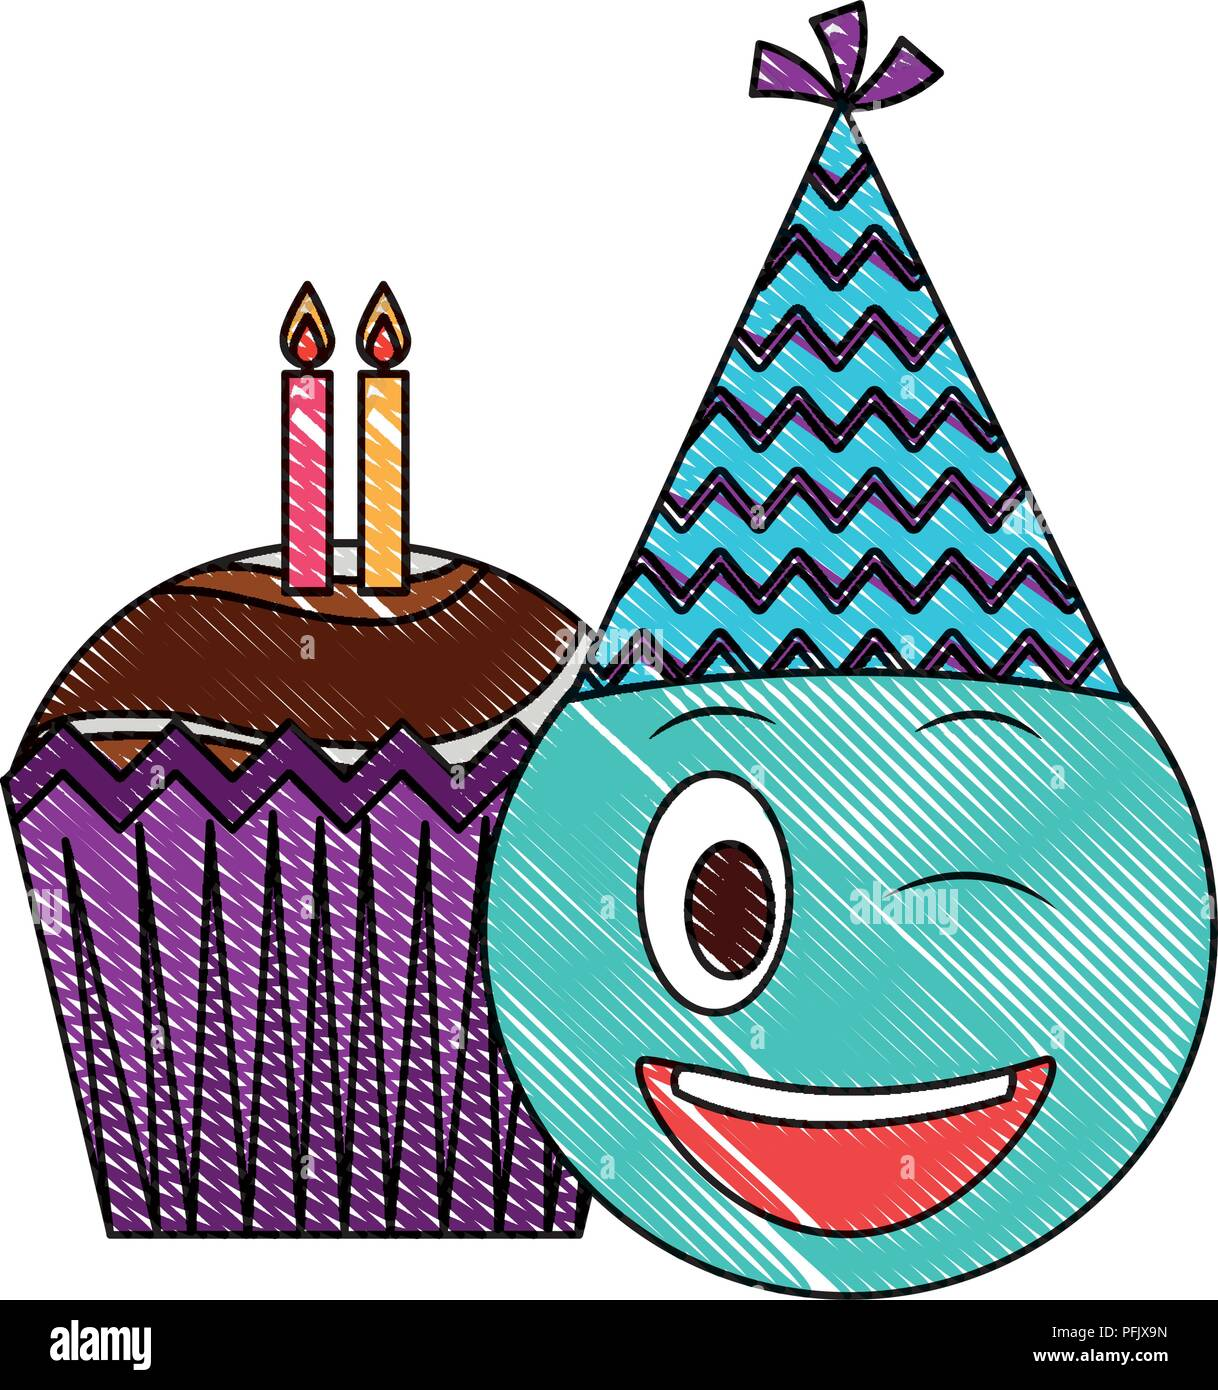 Birthday Emoji With Party Hat And Cupcakes Candles Drawing Color